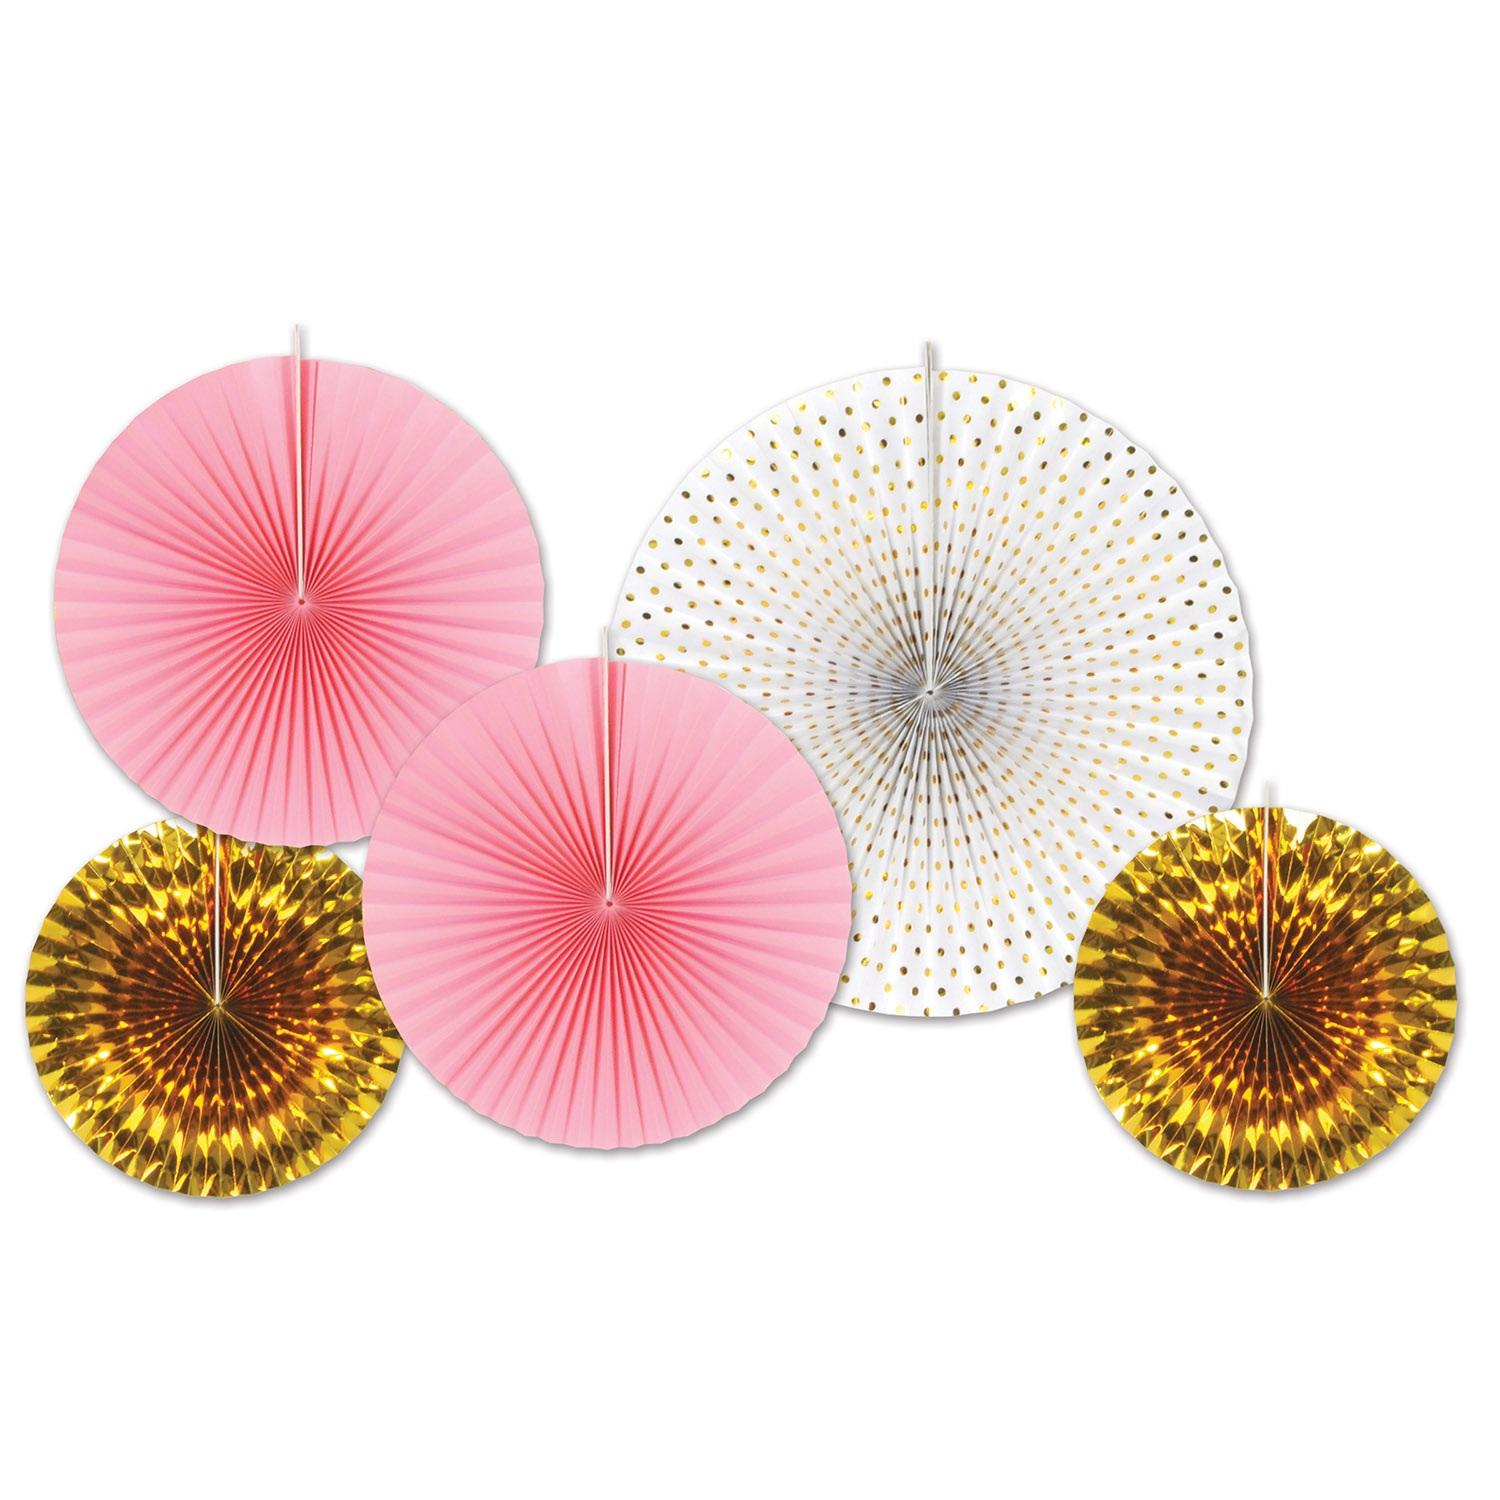 Club Pack of 60 Decorative Gold and Pink Paper Foil Fans 16""